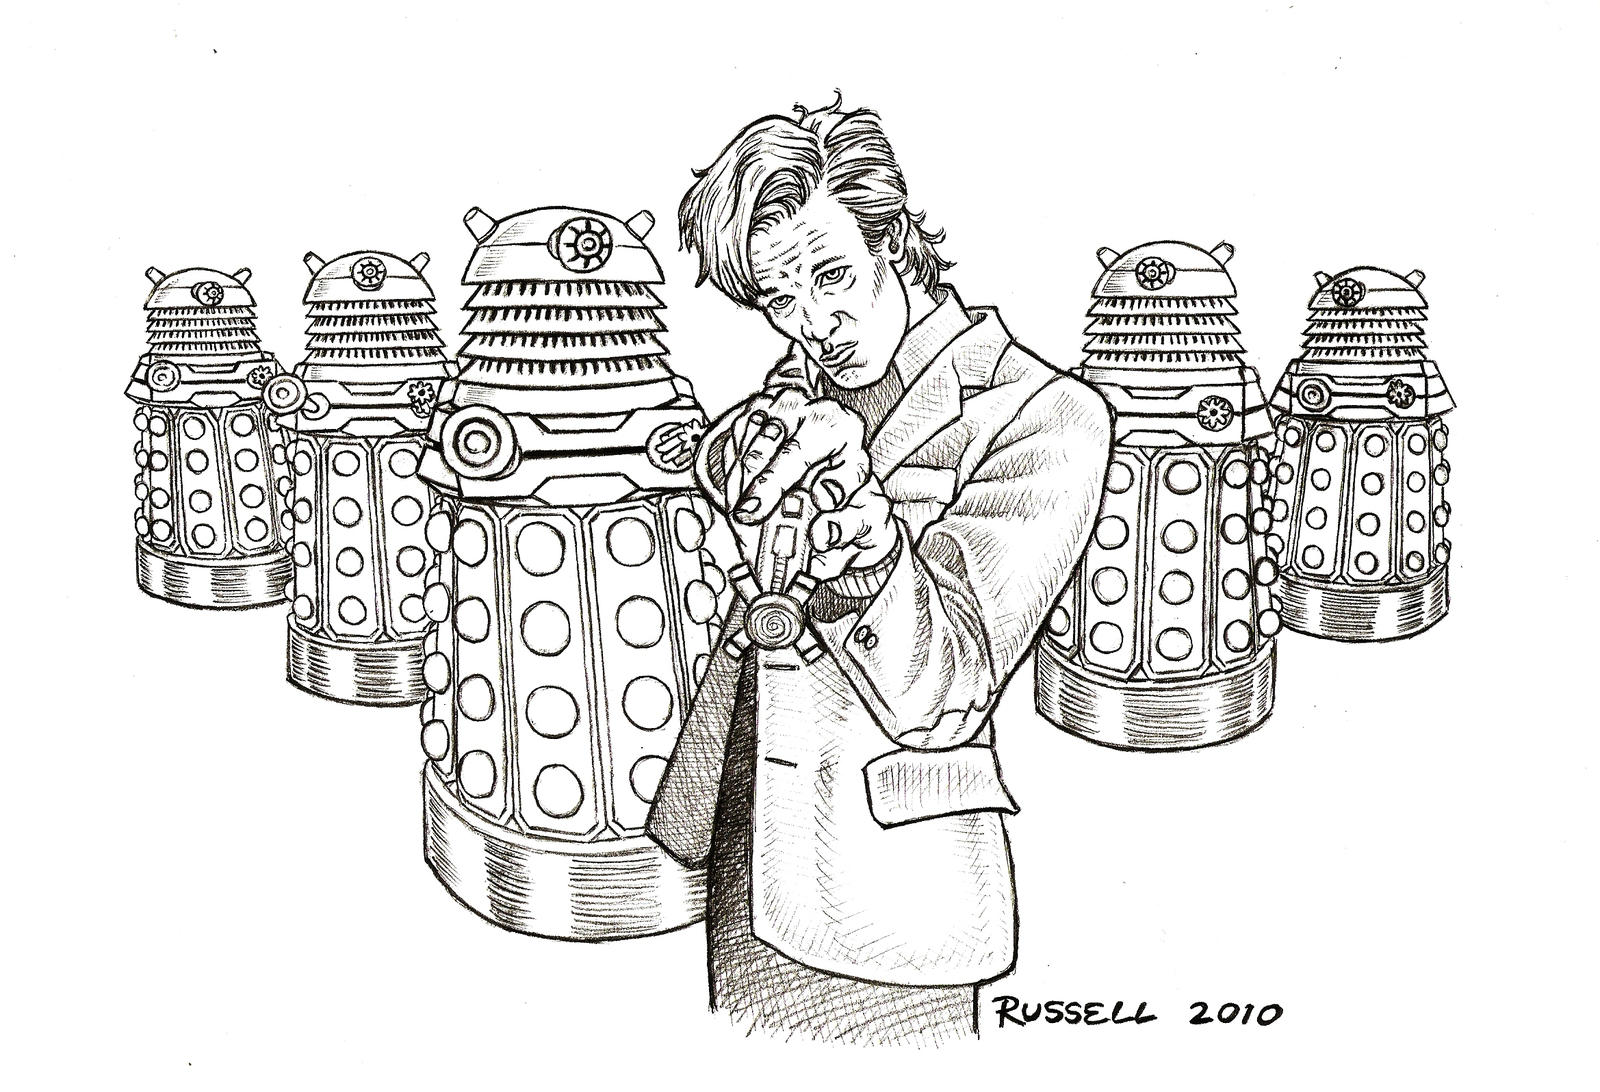 Doctor Who Vs The Daleks by Bungle0